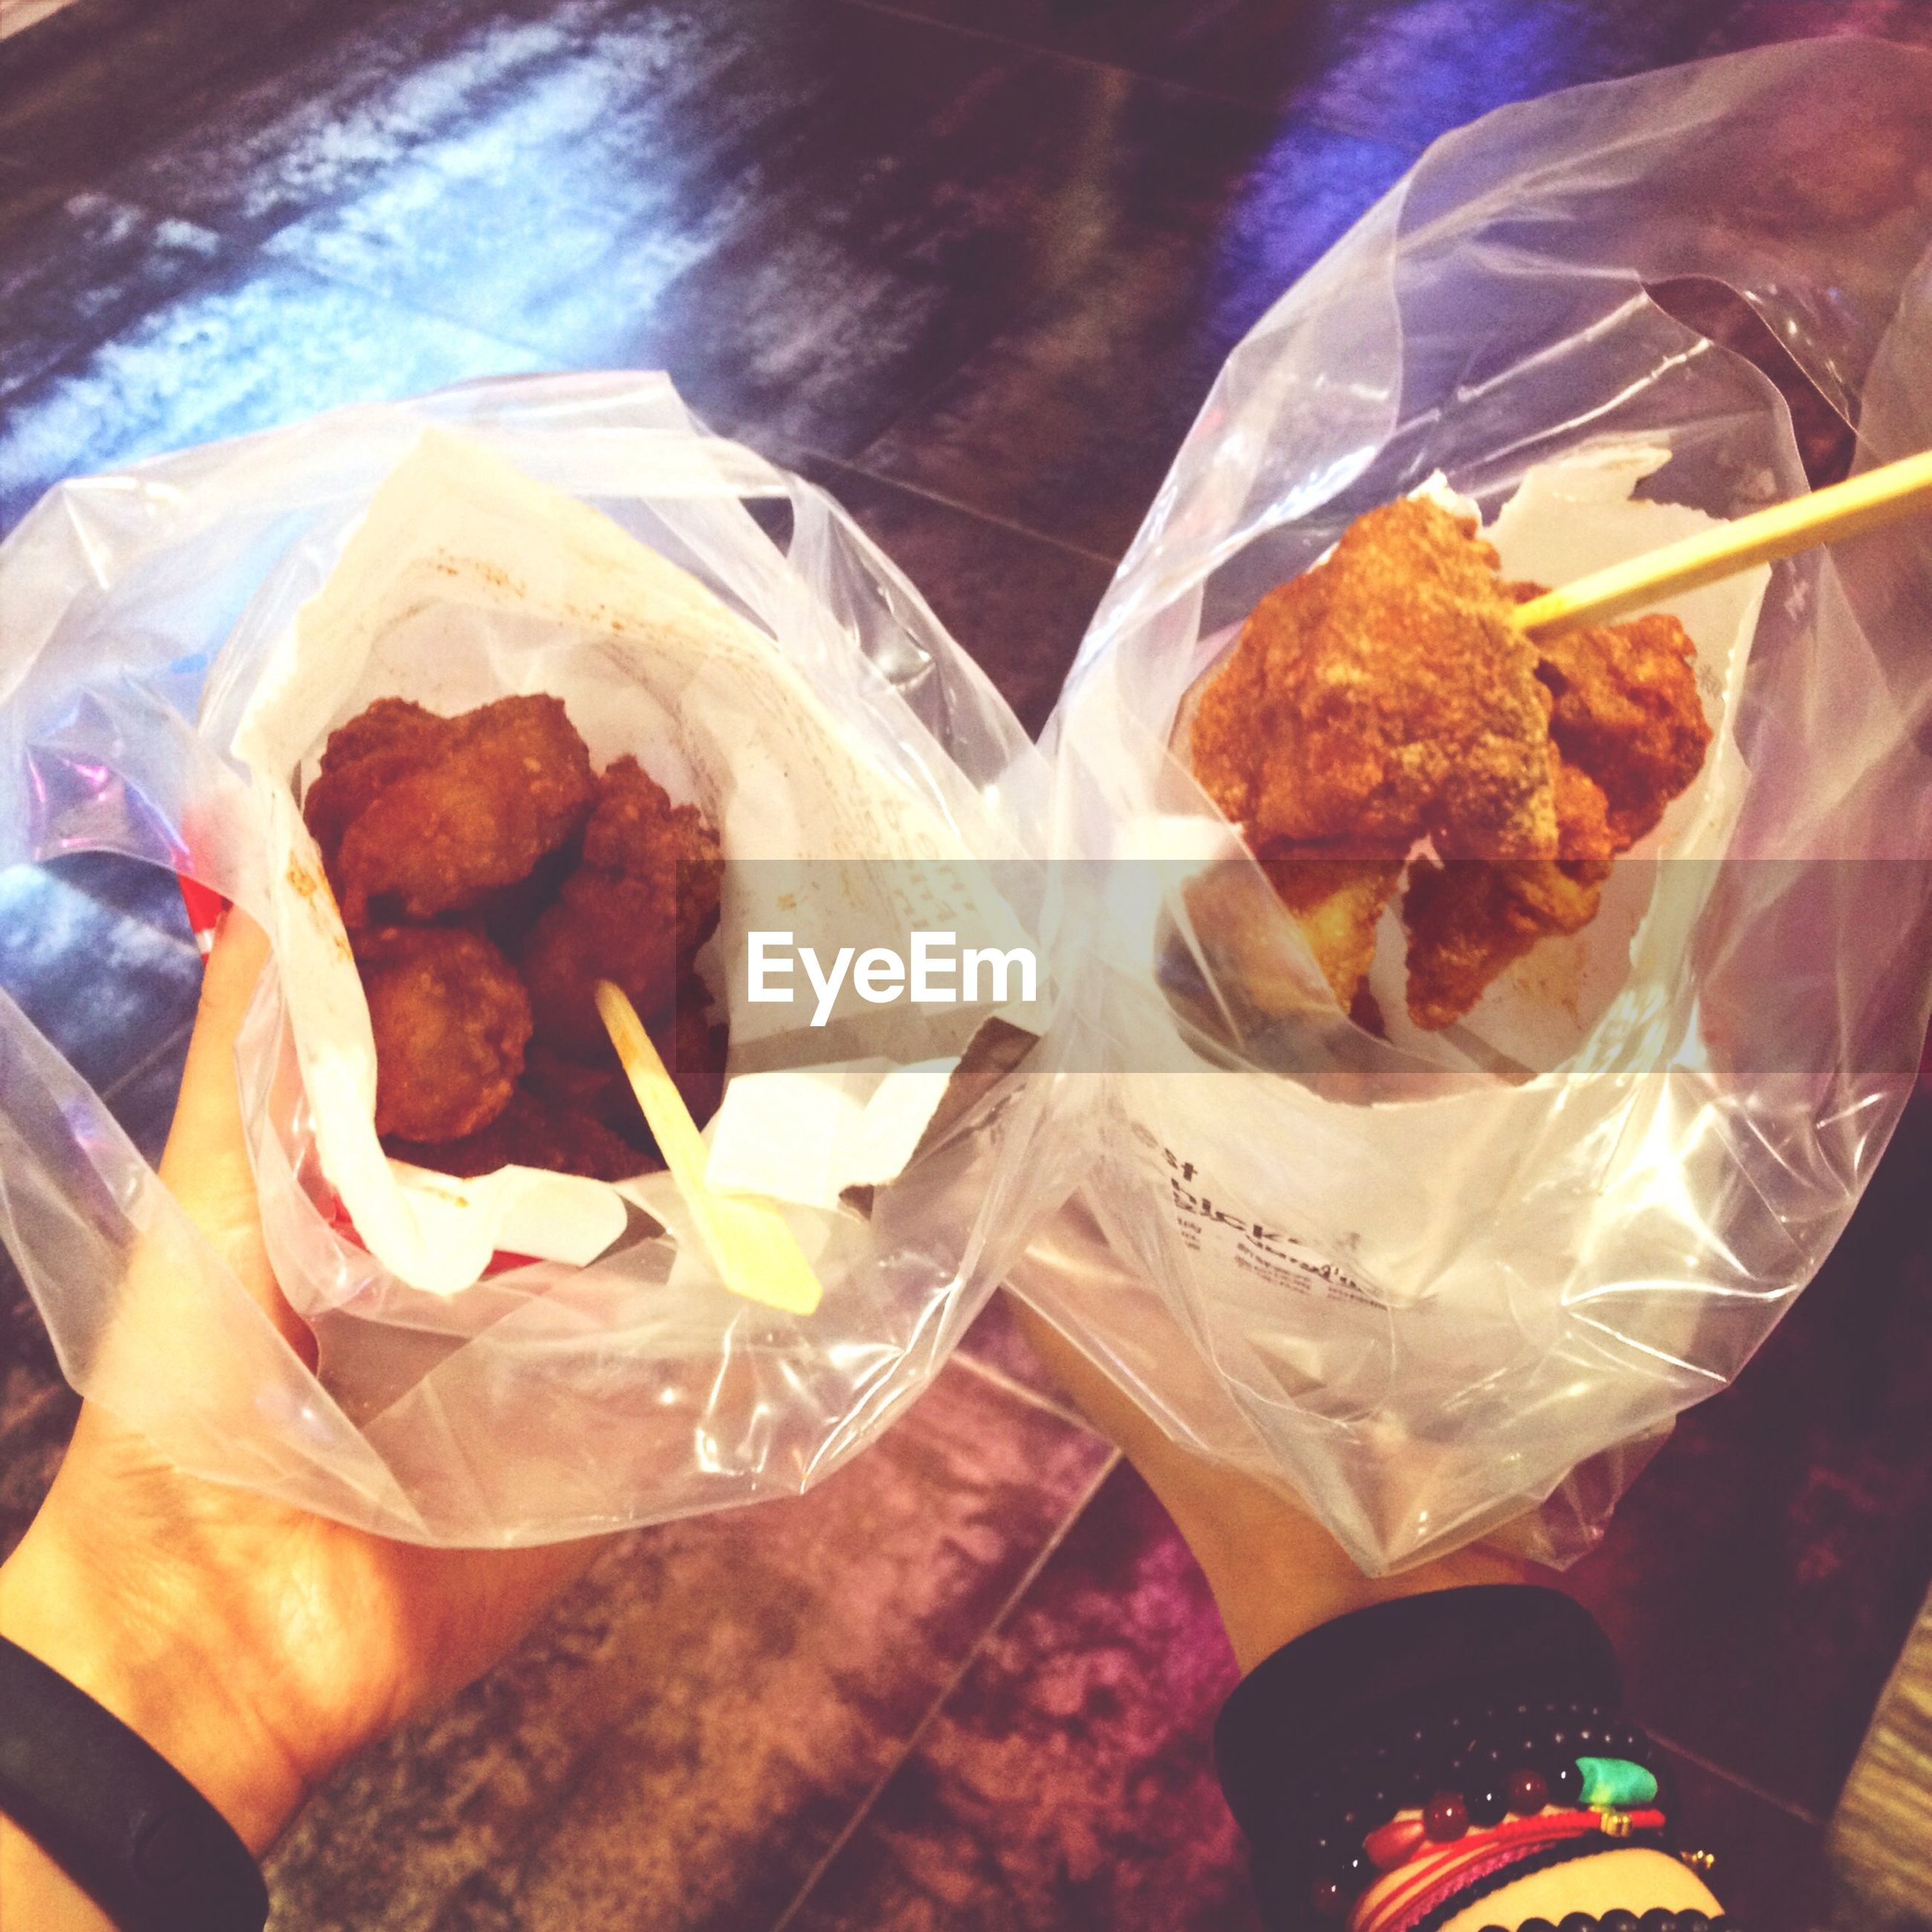 Cropped image of hands holding food in plastic bag